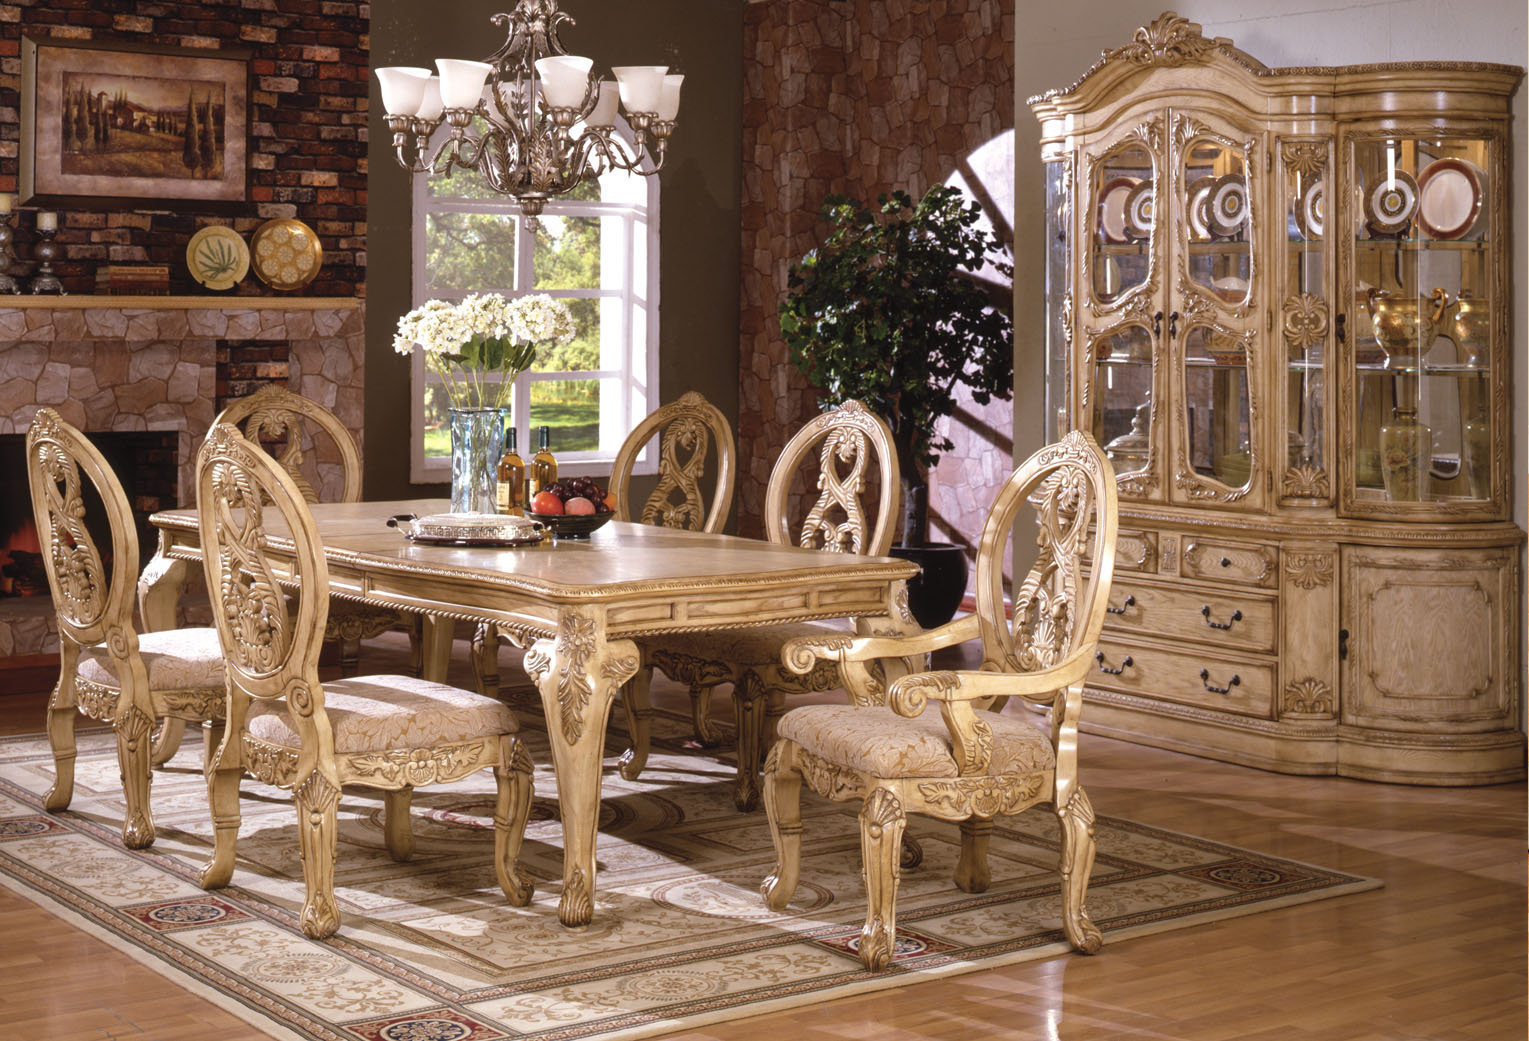 White Wash Dining Table Groups Formal Wood Dining Room Set In with regard to 11 Awesome Initiatives of How to Upgrade Formal Living Room Sets For Sale